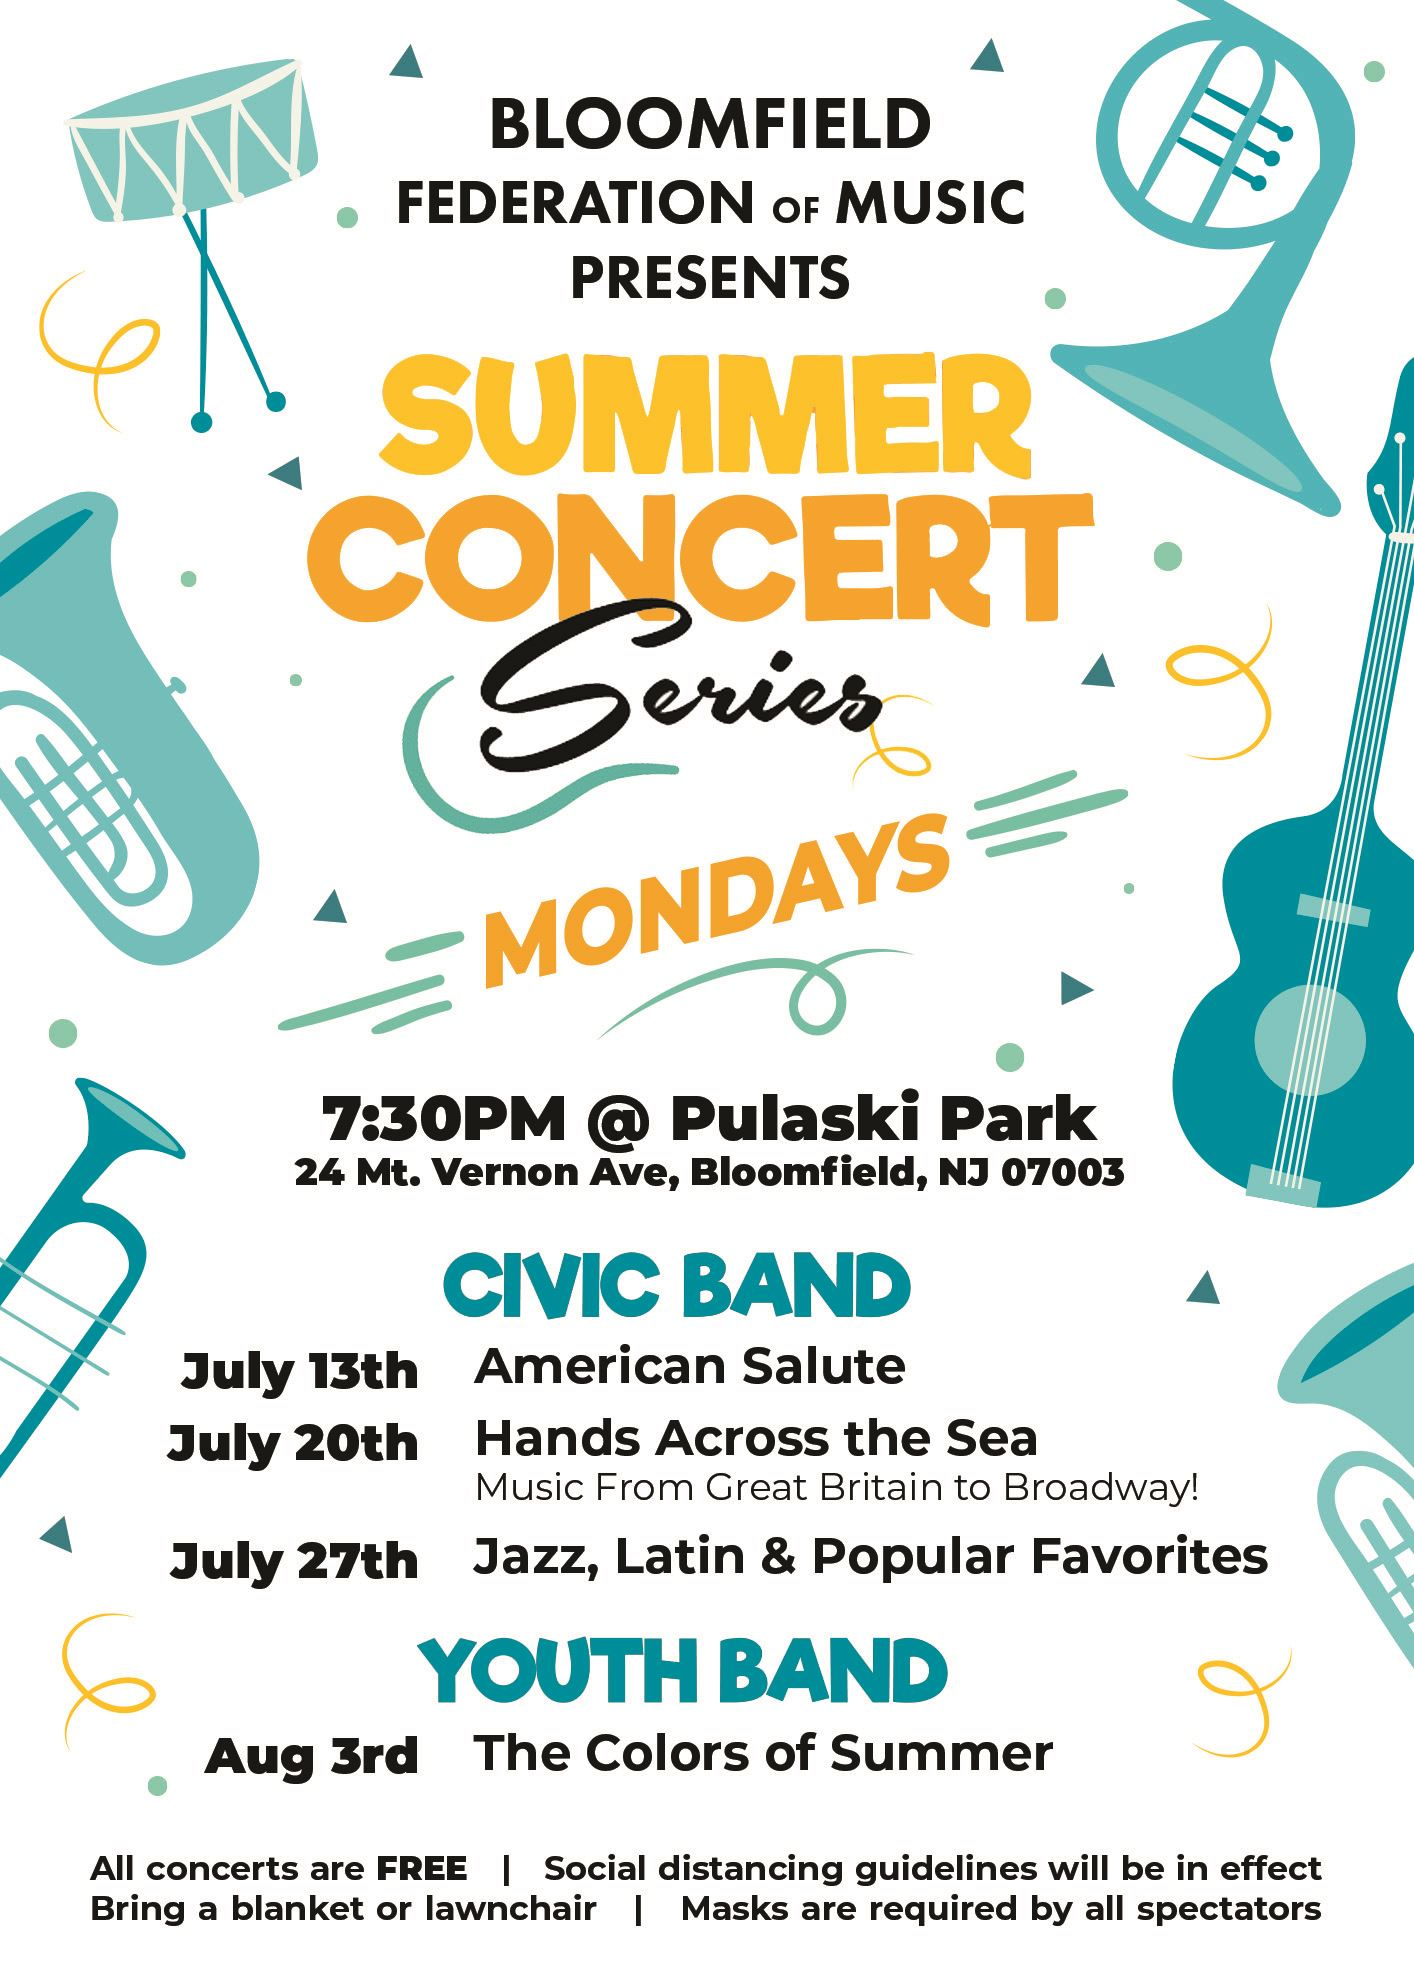 FOM summer concert series